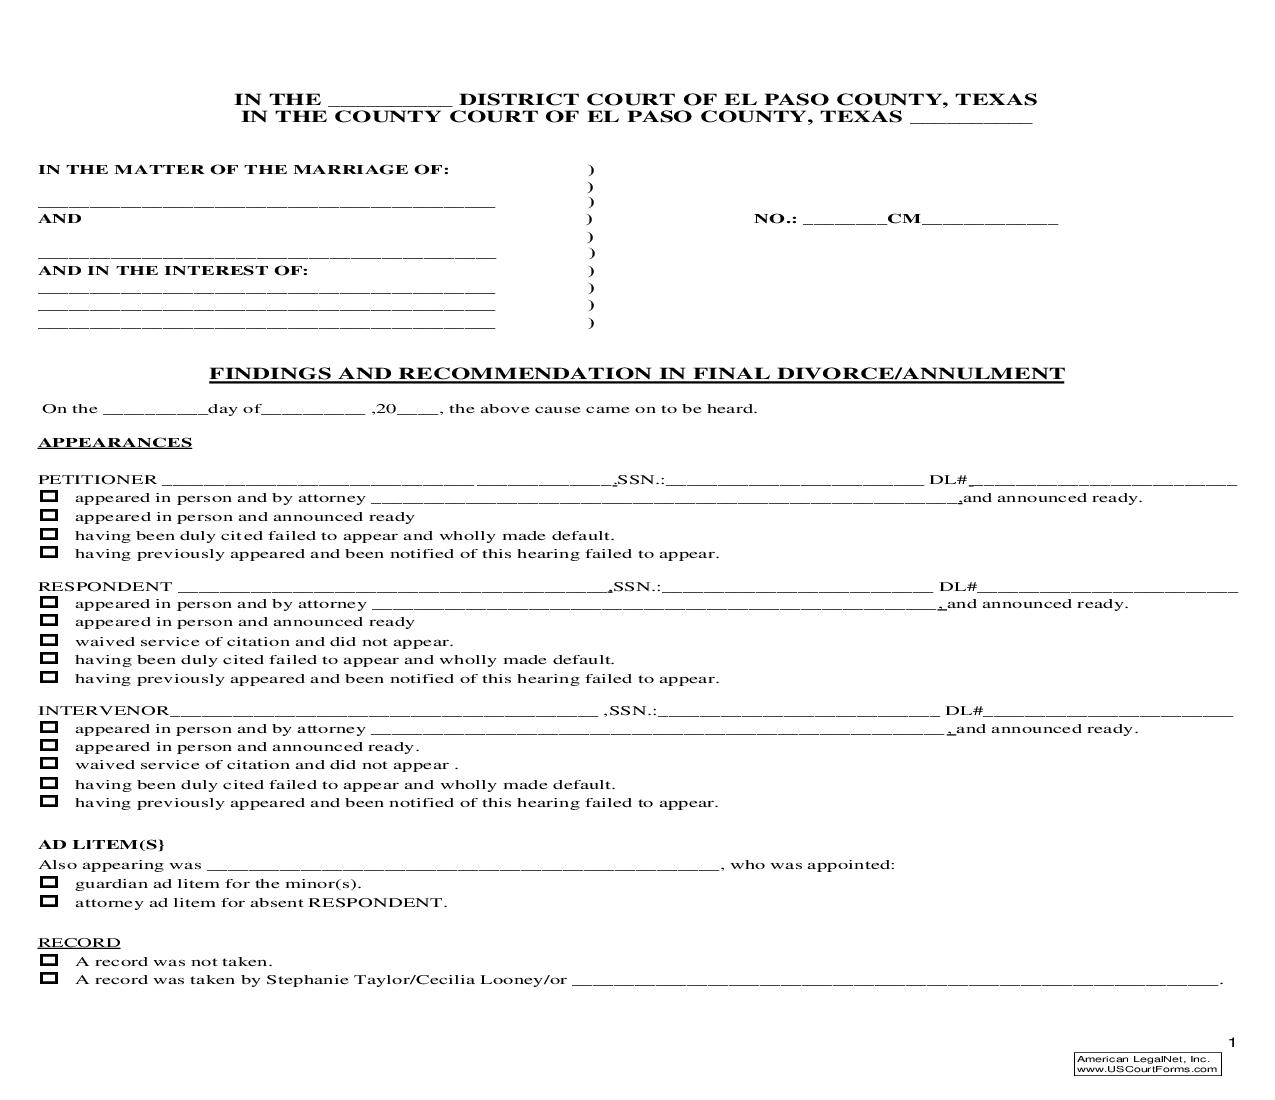 Findings And Recommendation In Final Divorce-Annulment | Pdf Fpdf Doc Docx | Texas